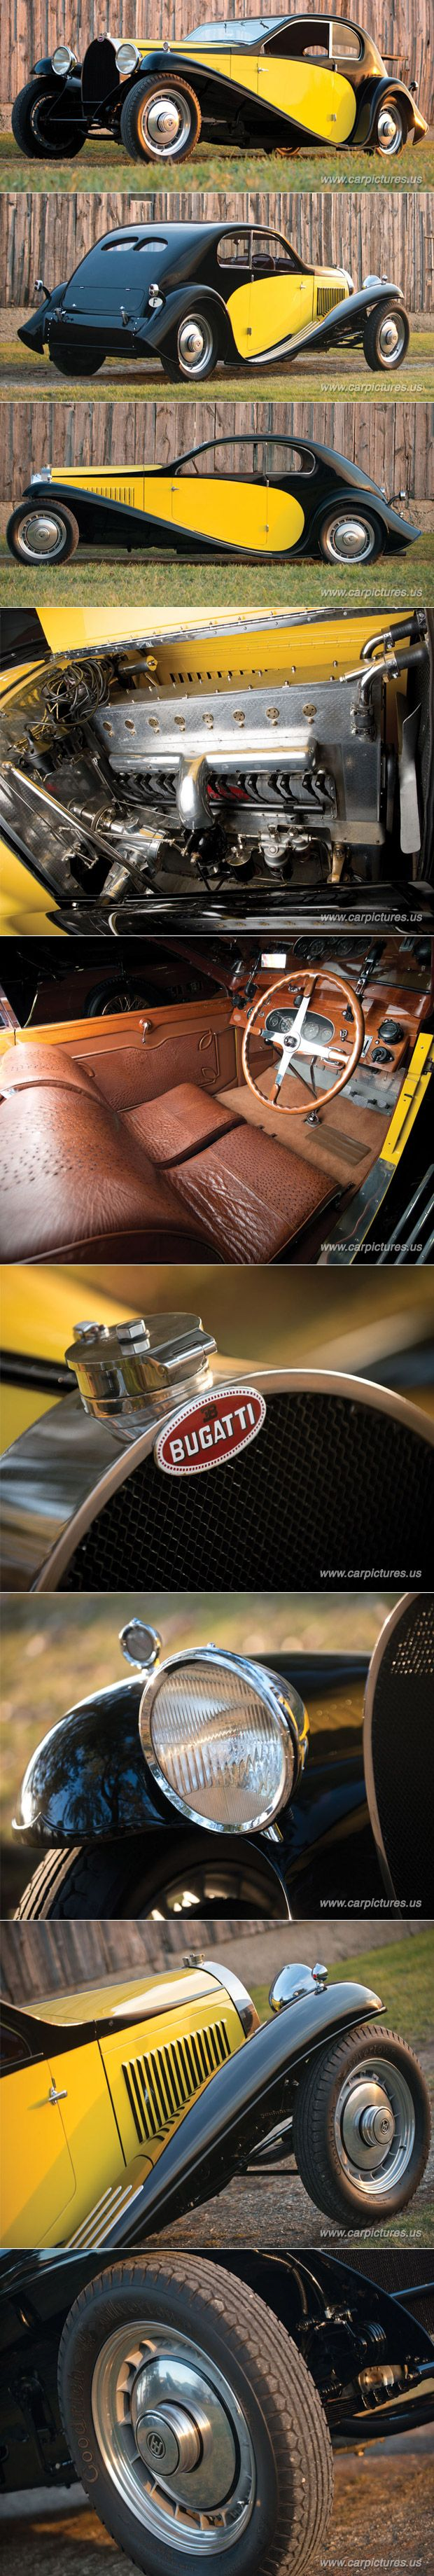 305 best Auto styling images on Pinterest